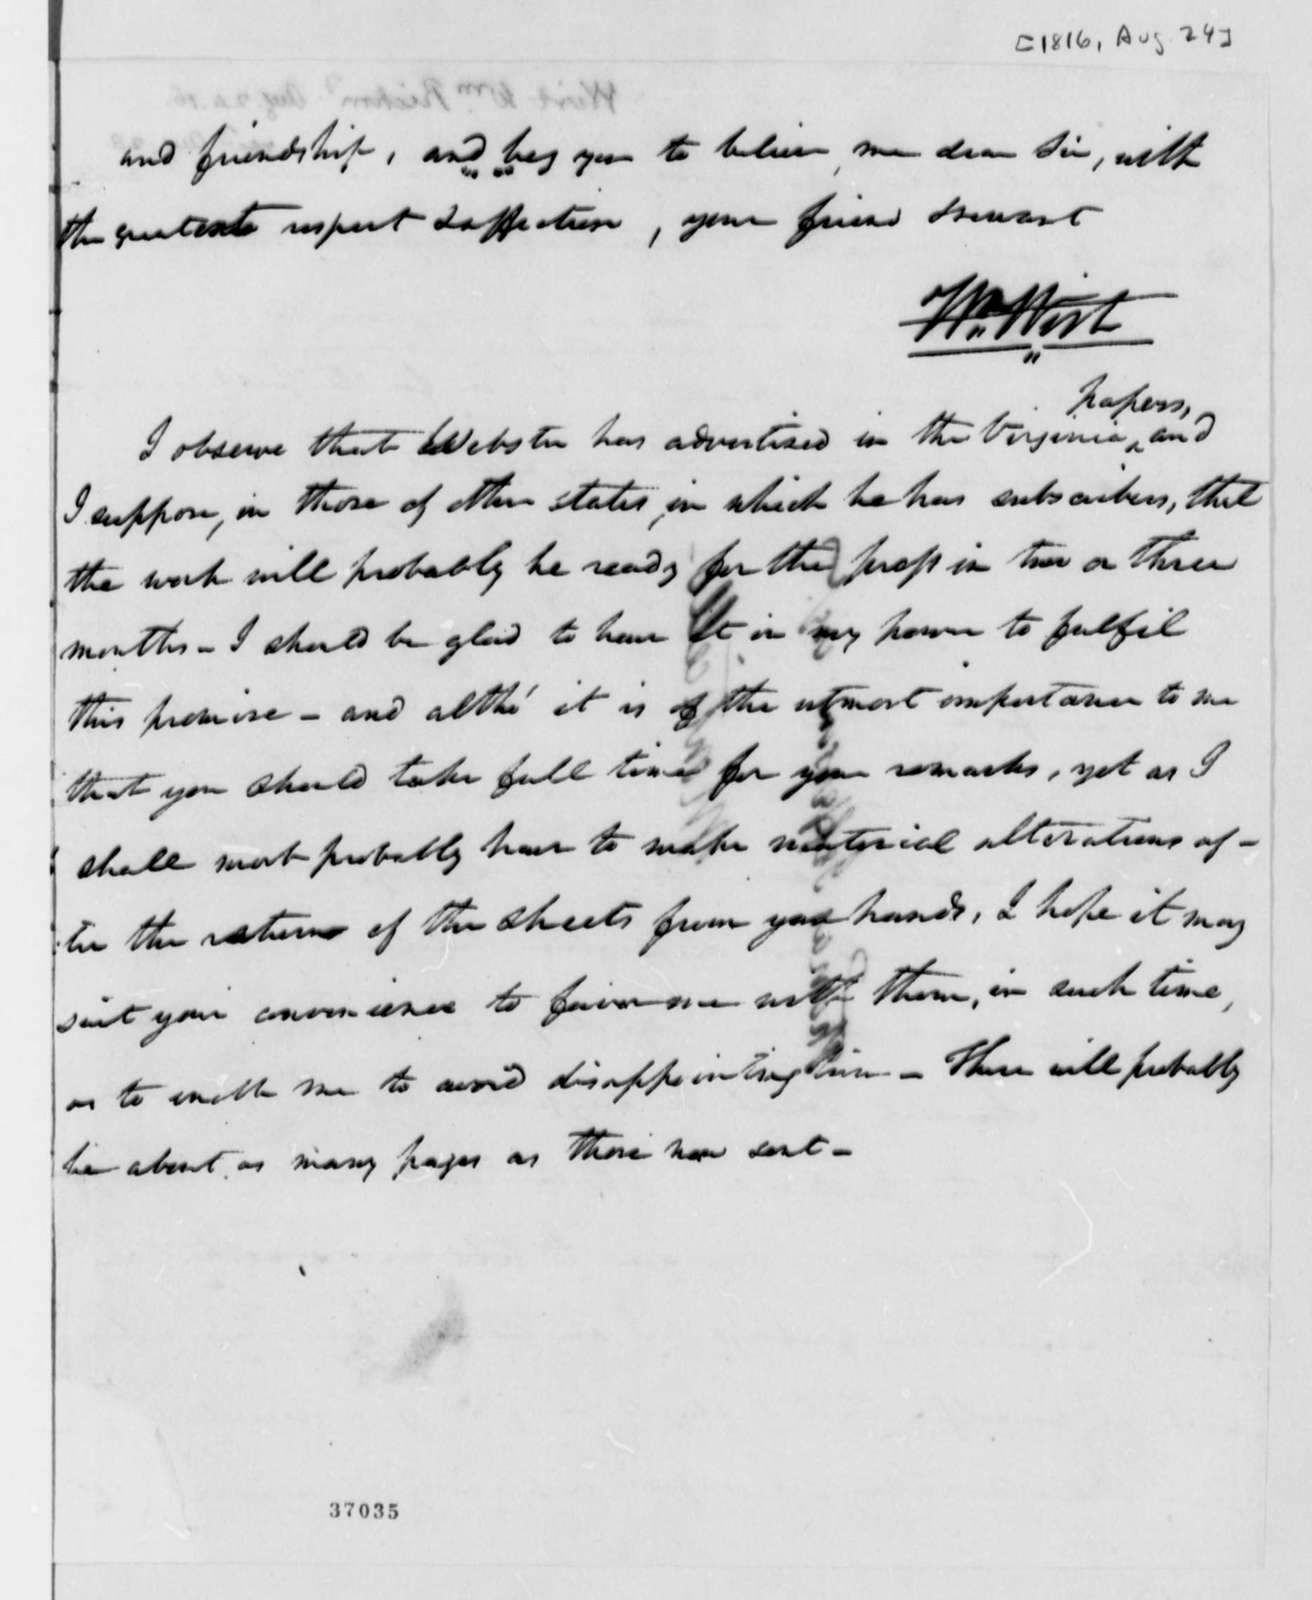 William Wirt to Thomas Jefferson, August 24, 1816